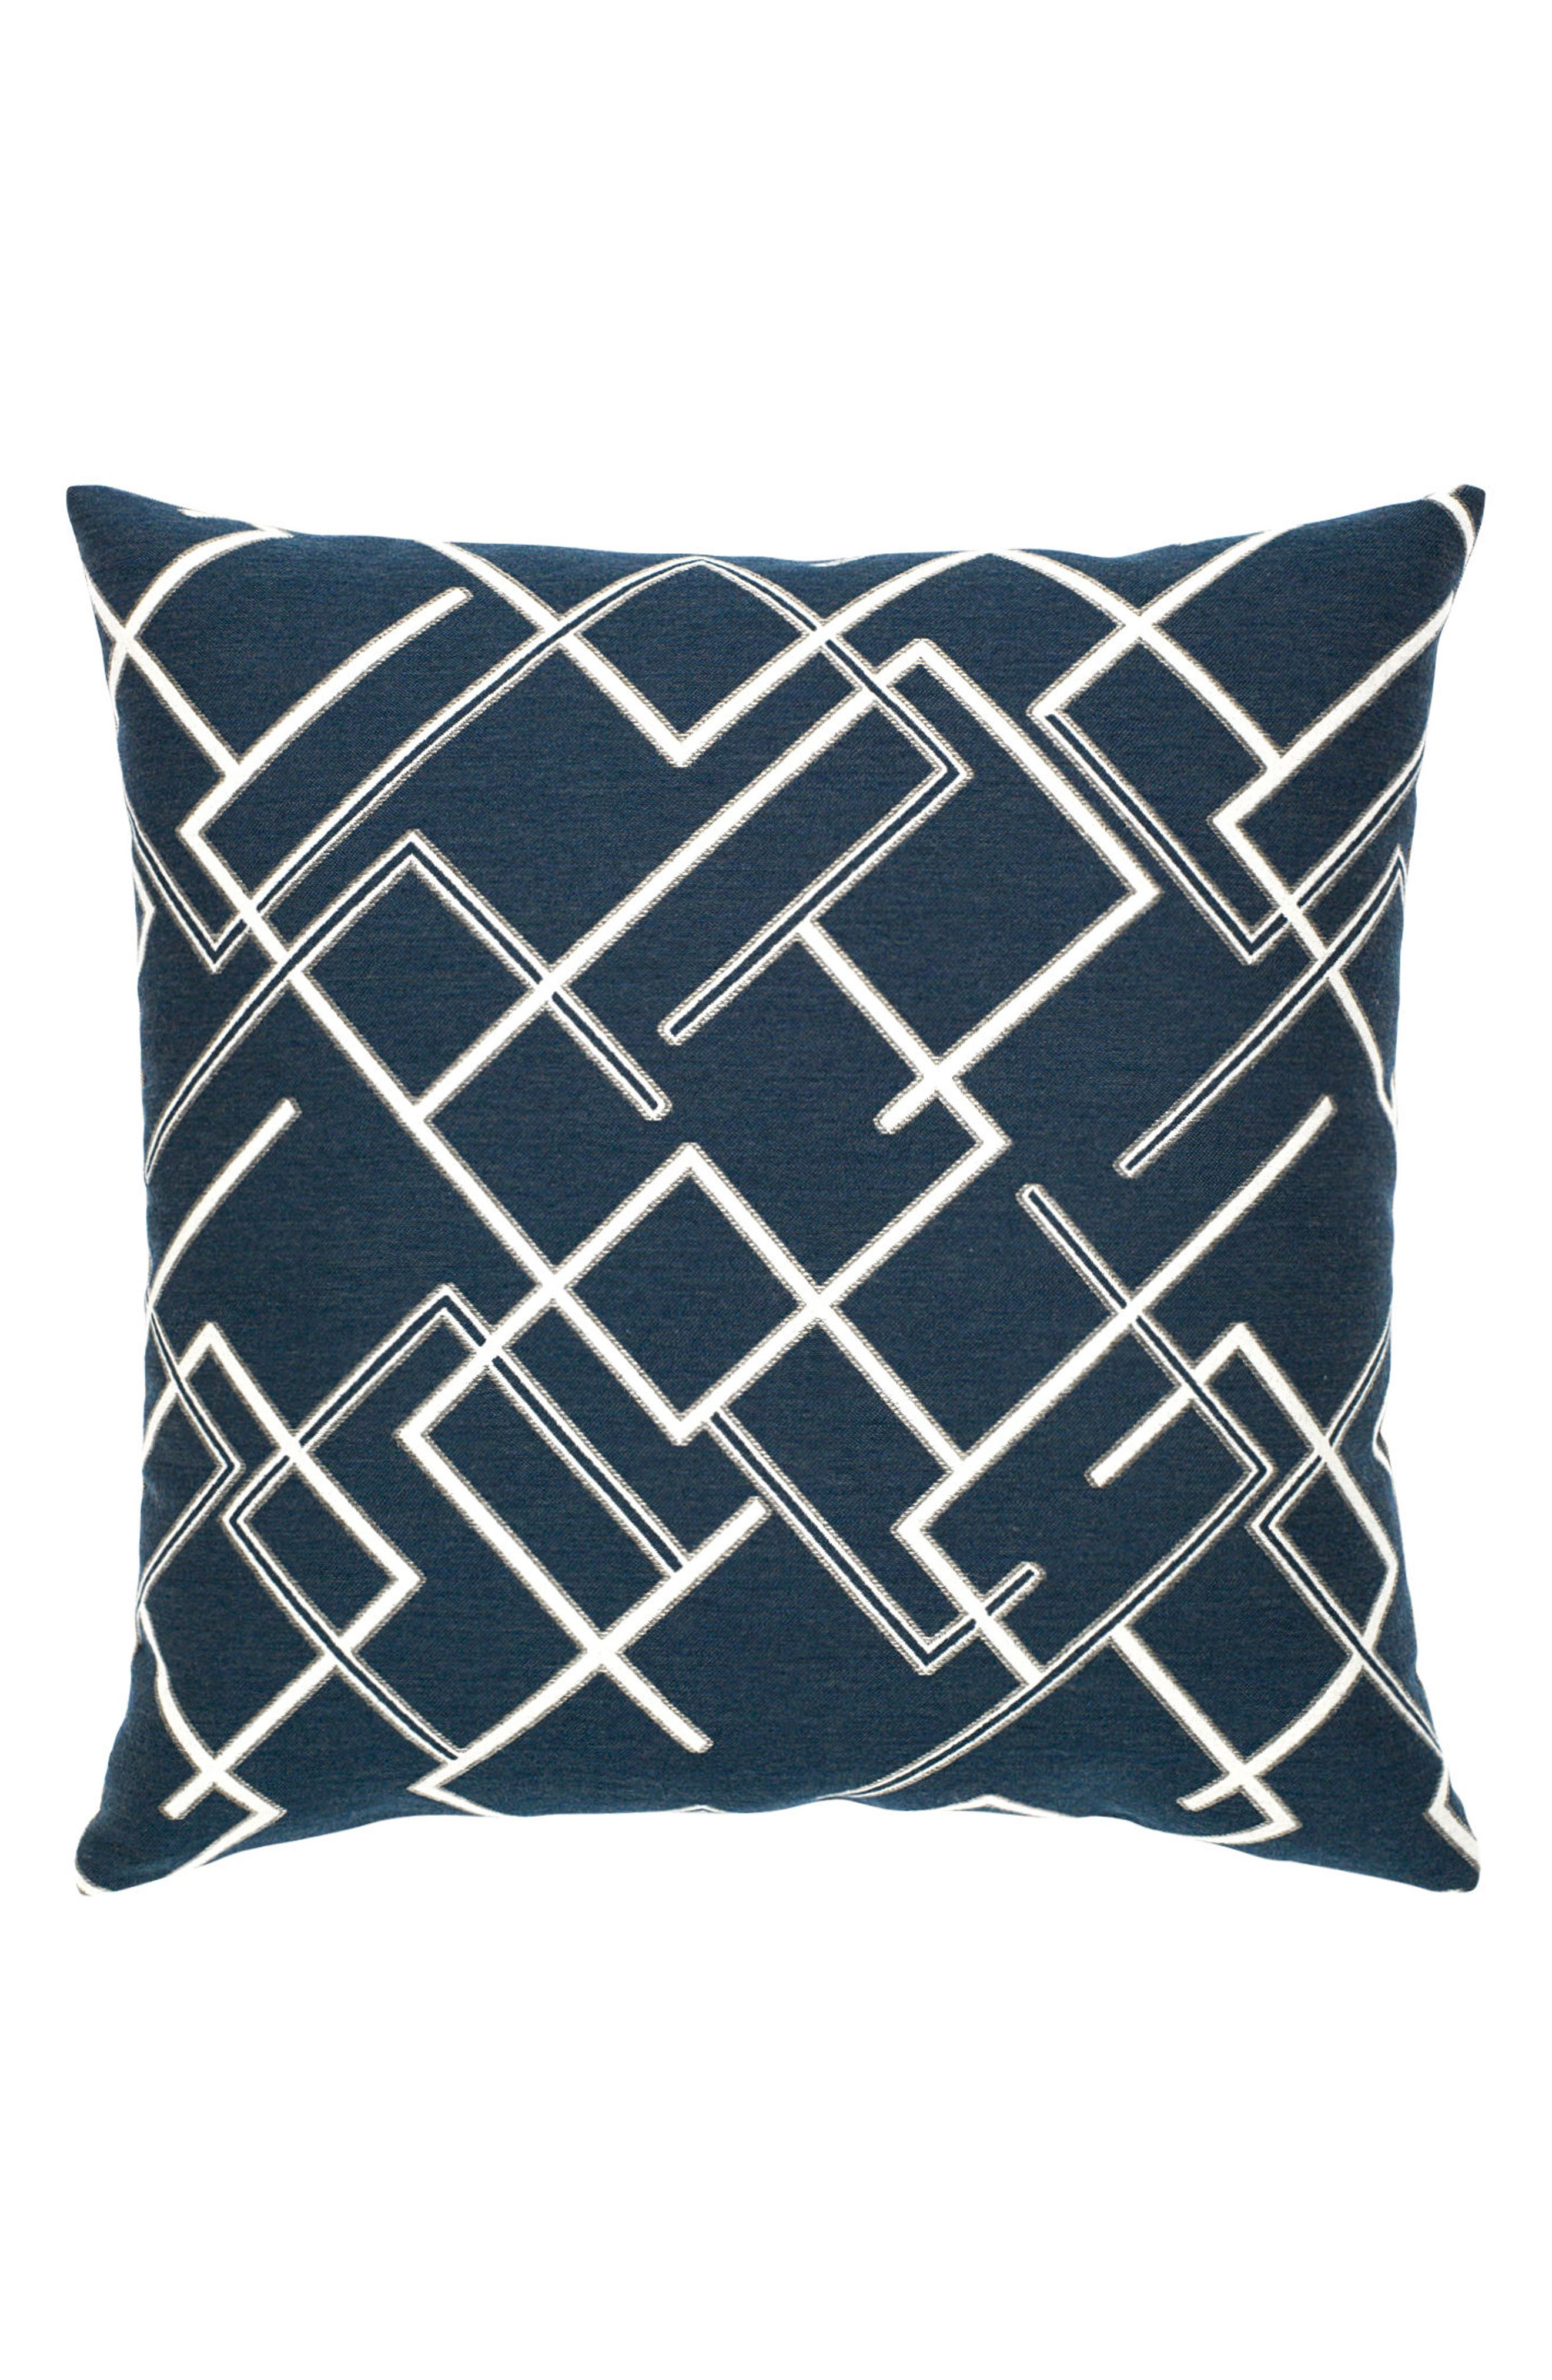 Divergence Indigo Indoor/Outdoor Accent Pillow,                         Main,                         color, 400